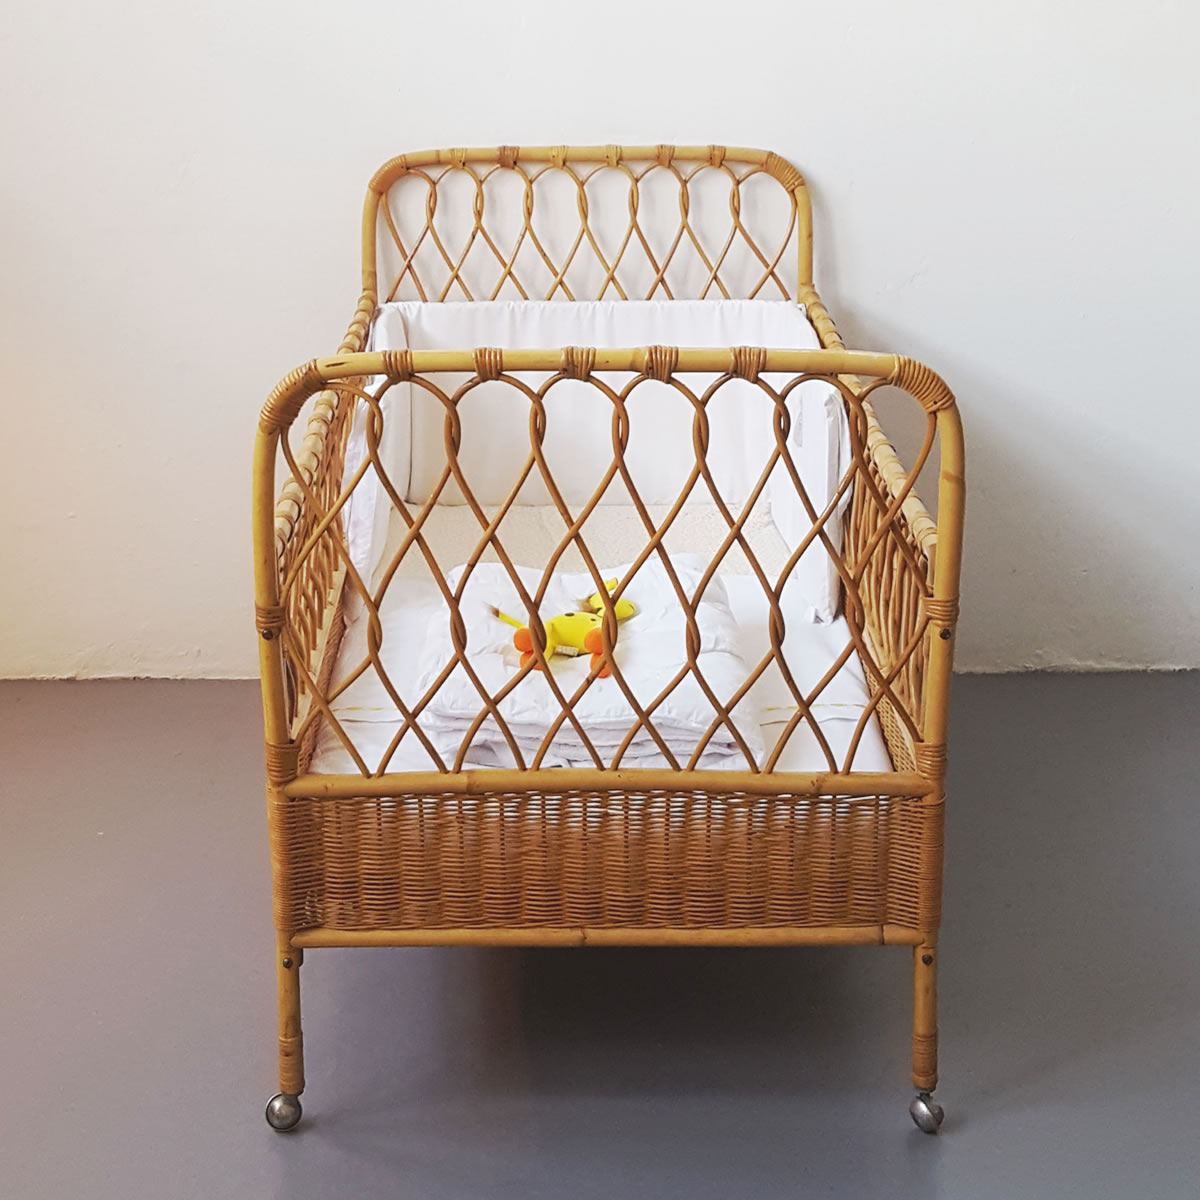 Vintage Rattan Baby Cot Old Is The New New